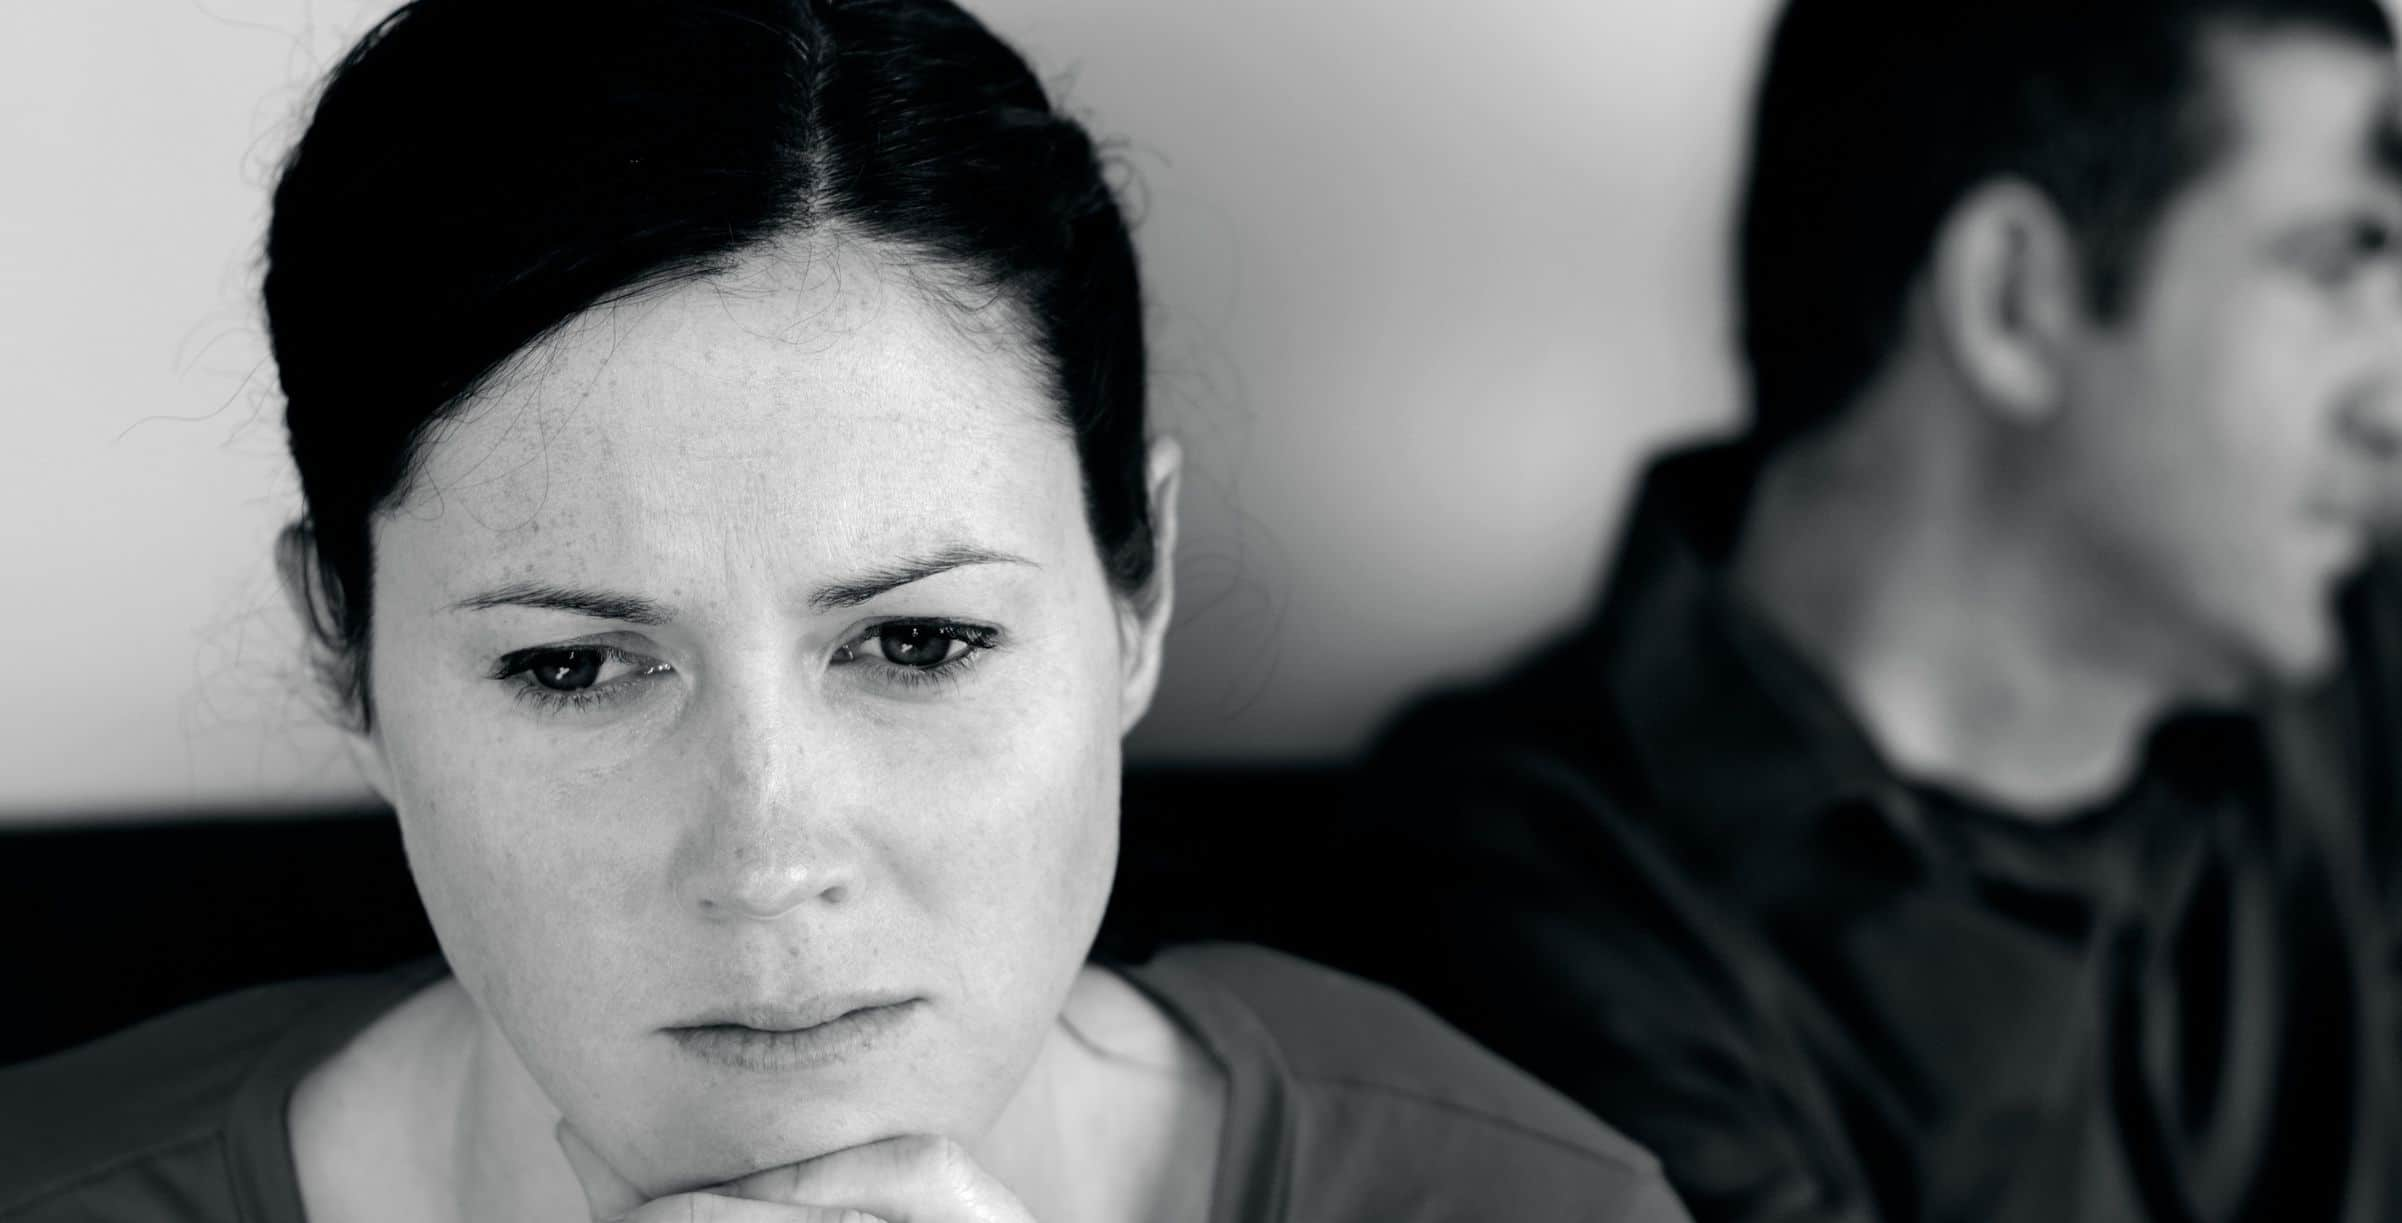 couple counselling - woman looking sad